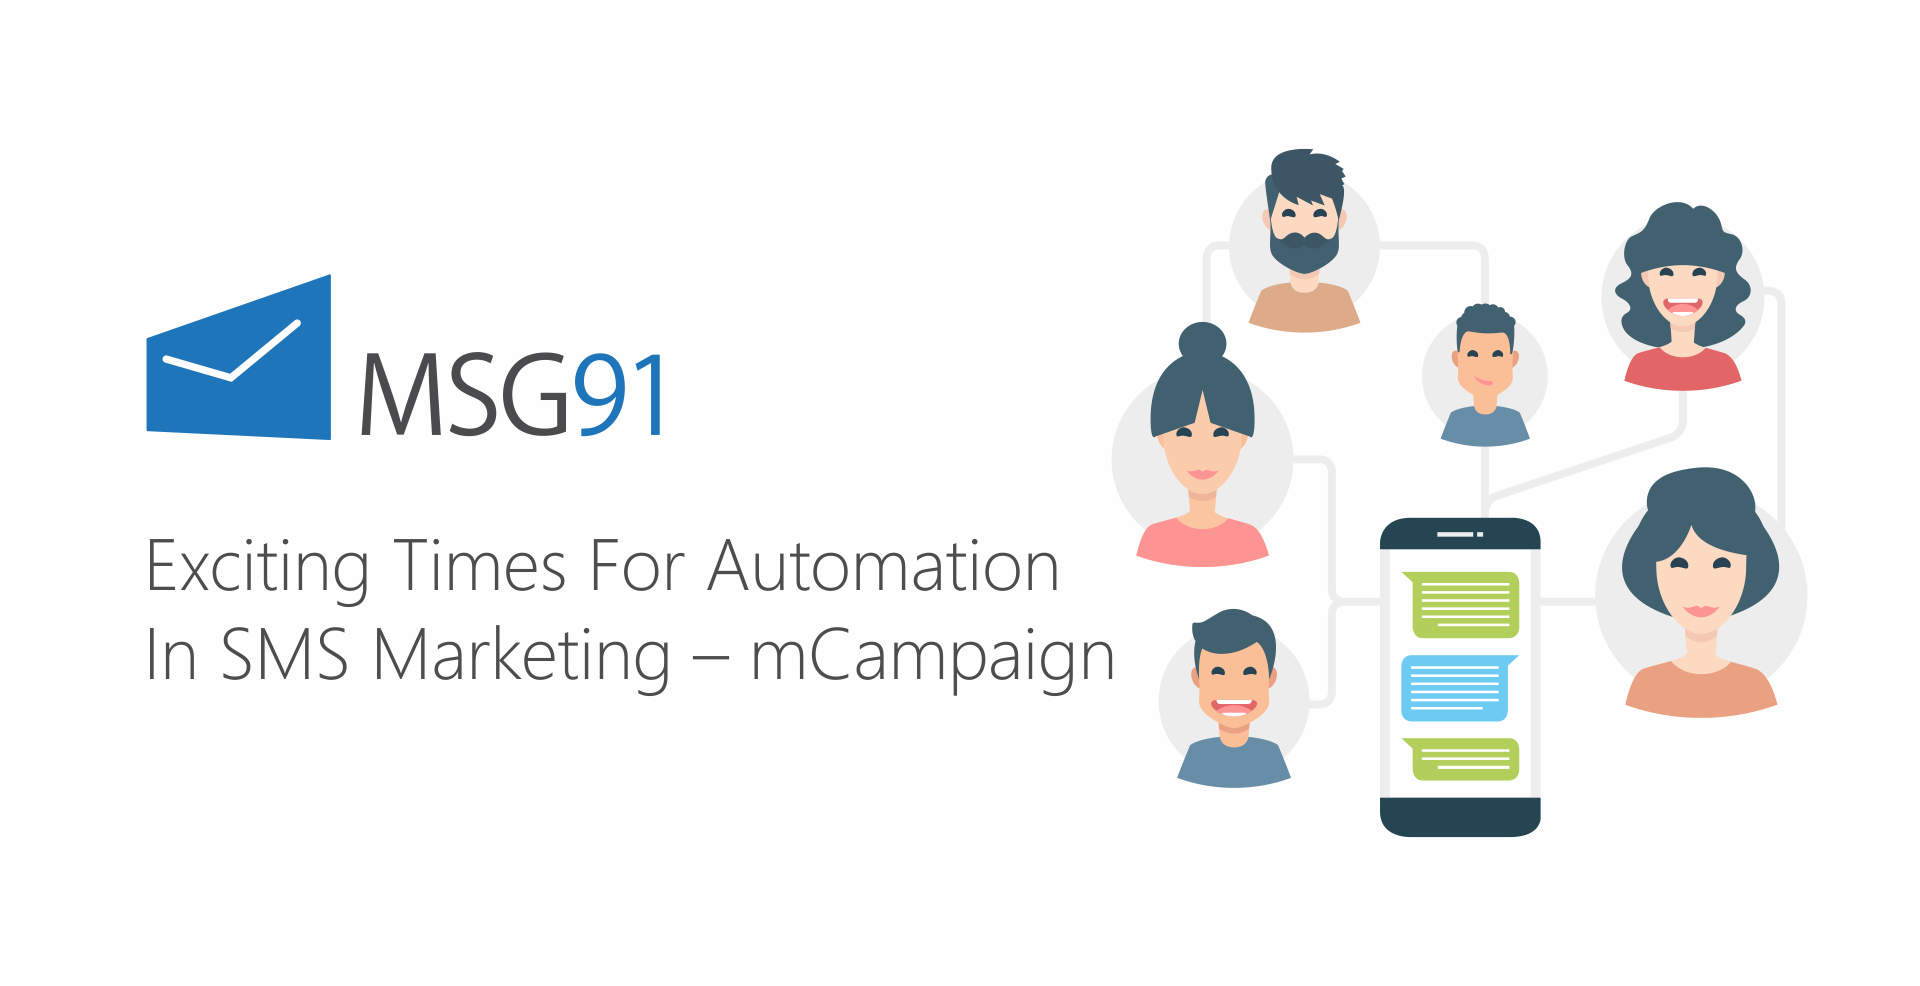 Exciting Times For Automation In SMS Marketing - mCampaign